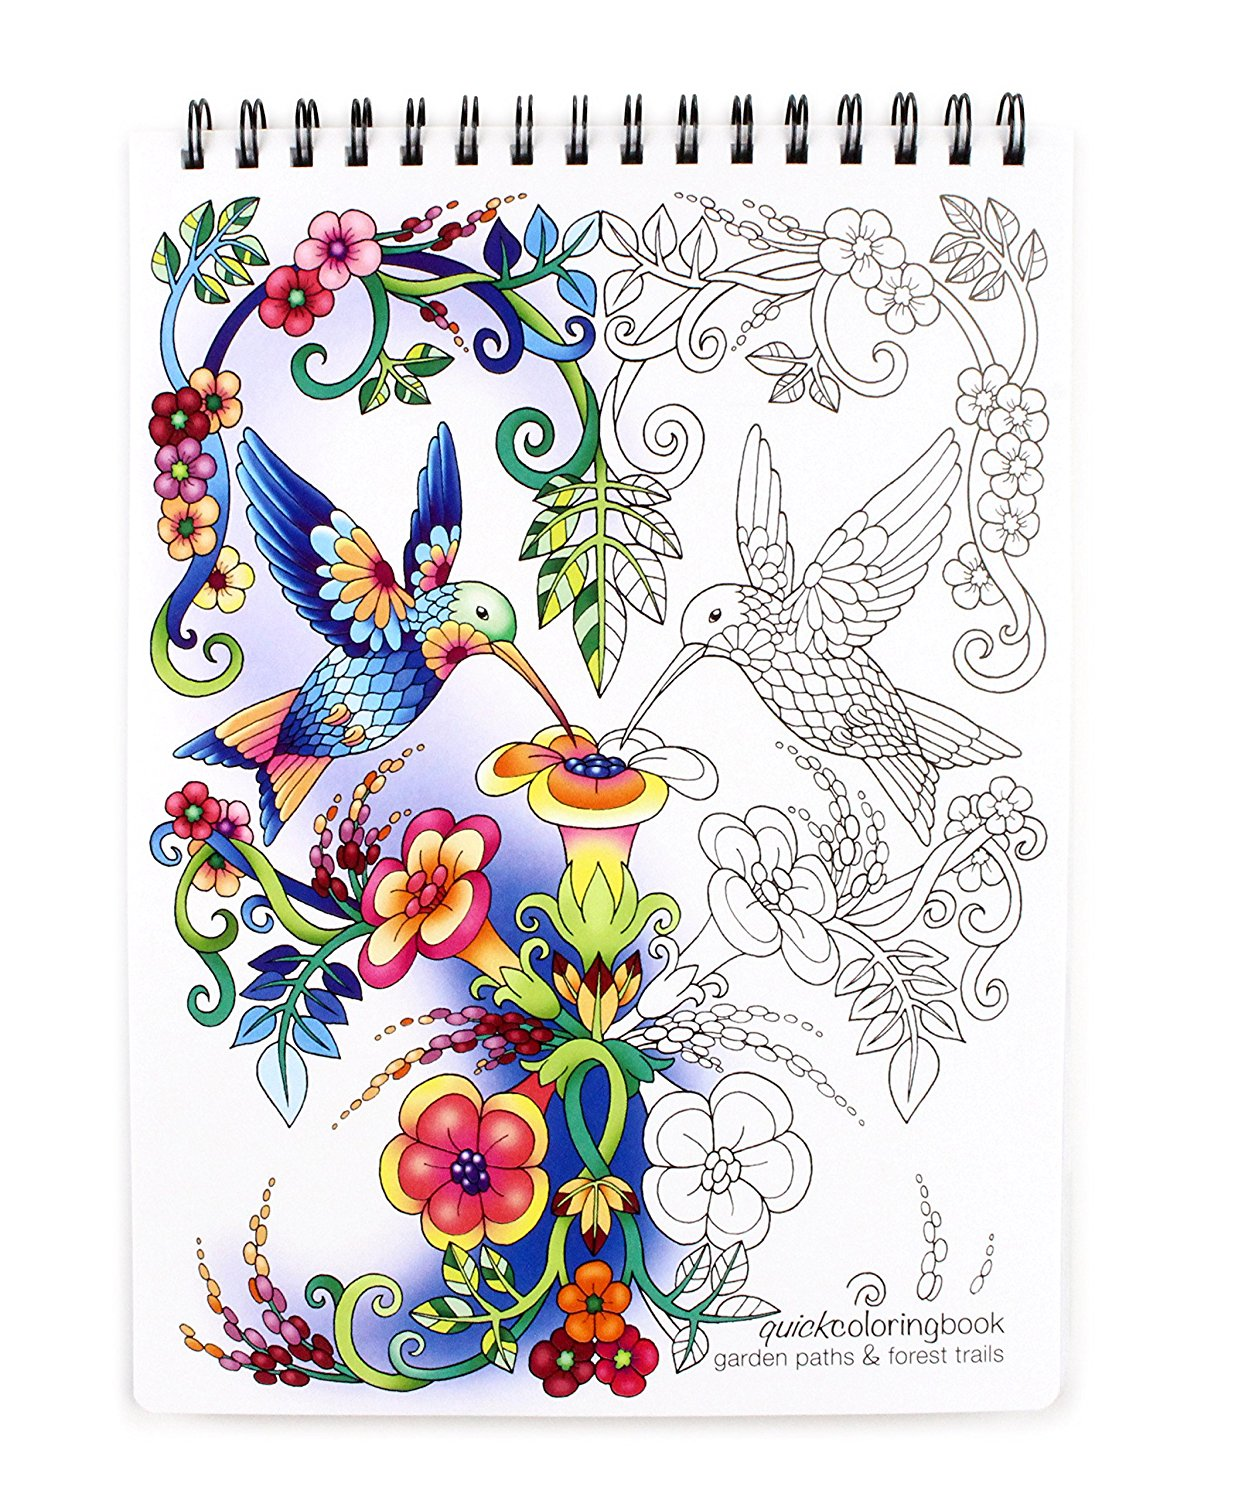 Coloring books - Garden Paths Forest Trails Quick Coloring Book 8 62 X 11 75 Inches